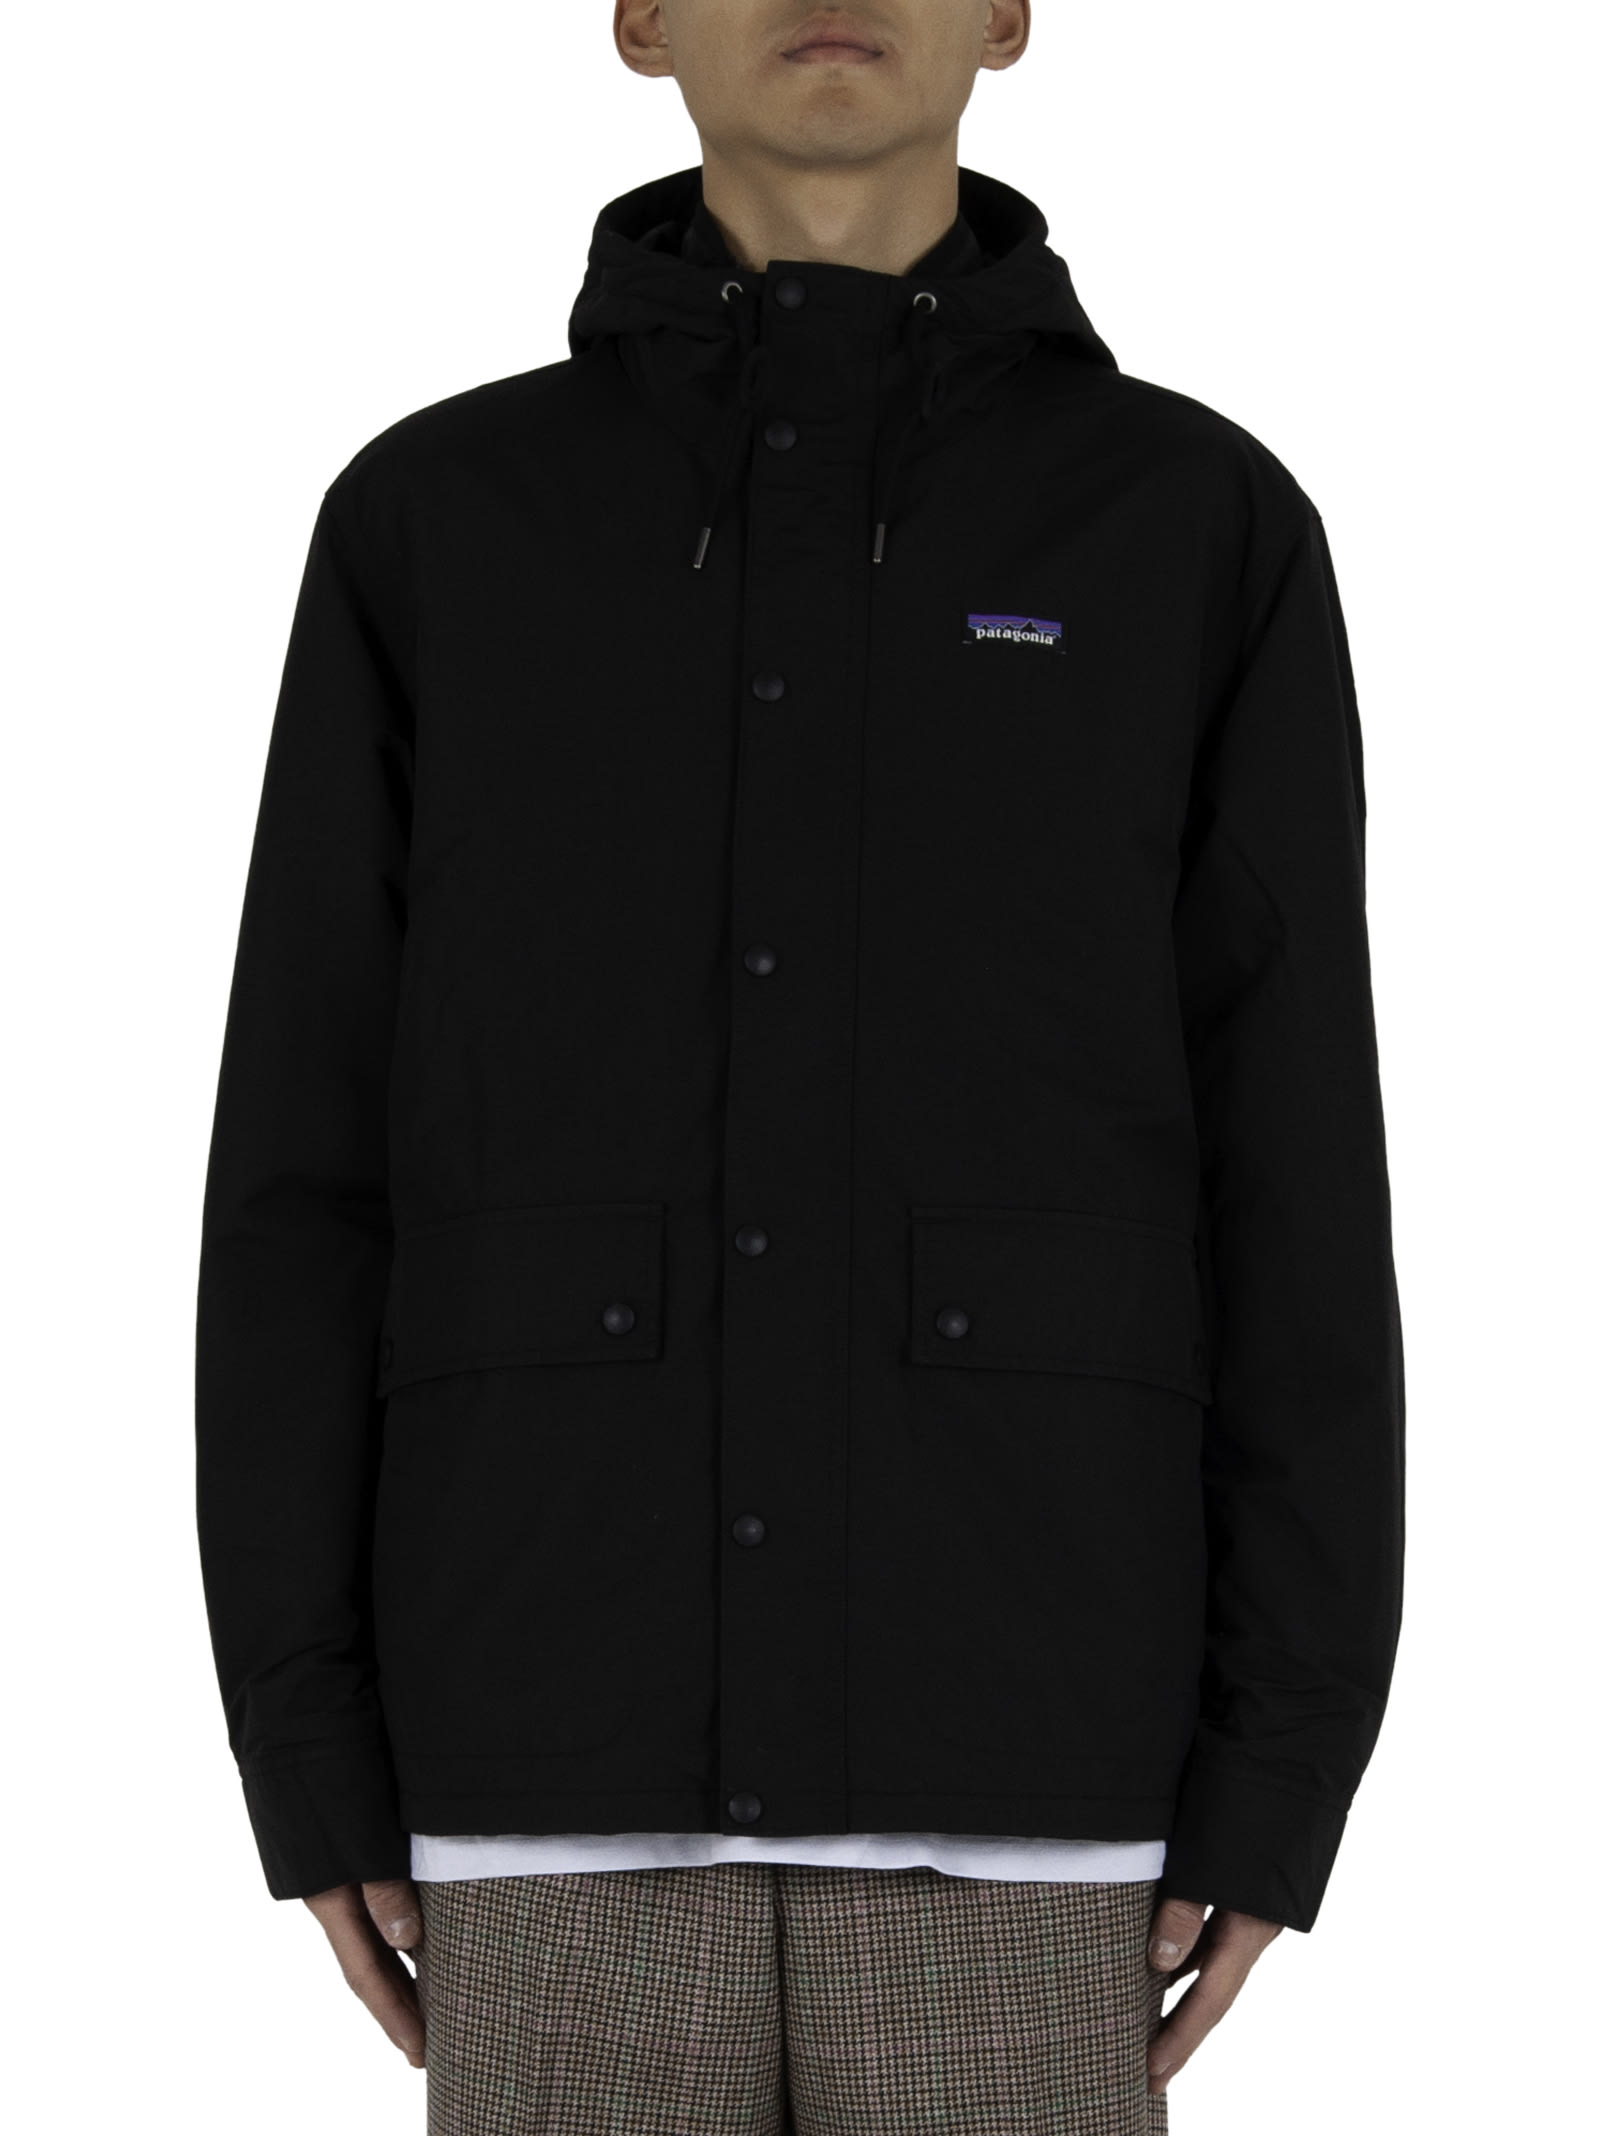 Water resistant; - Equipped with removable internal Los Gatos jacket with zipper; - Made of fleece to offer more warmth; - With Fair Trade Certified seams. - Composition: 100% Recycled Nylon - Color: Black